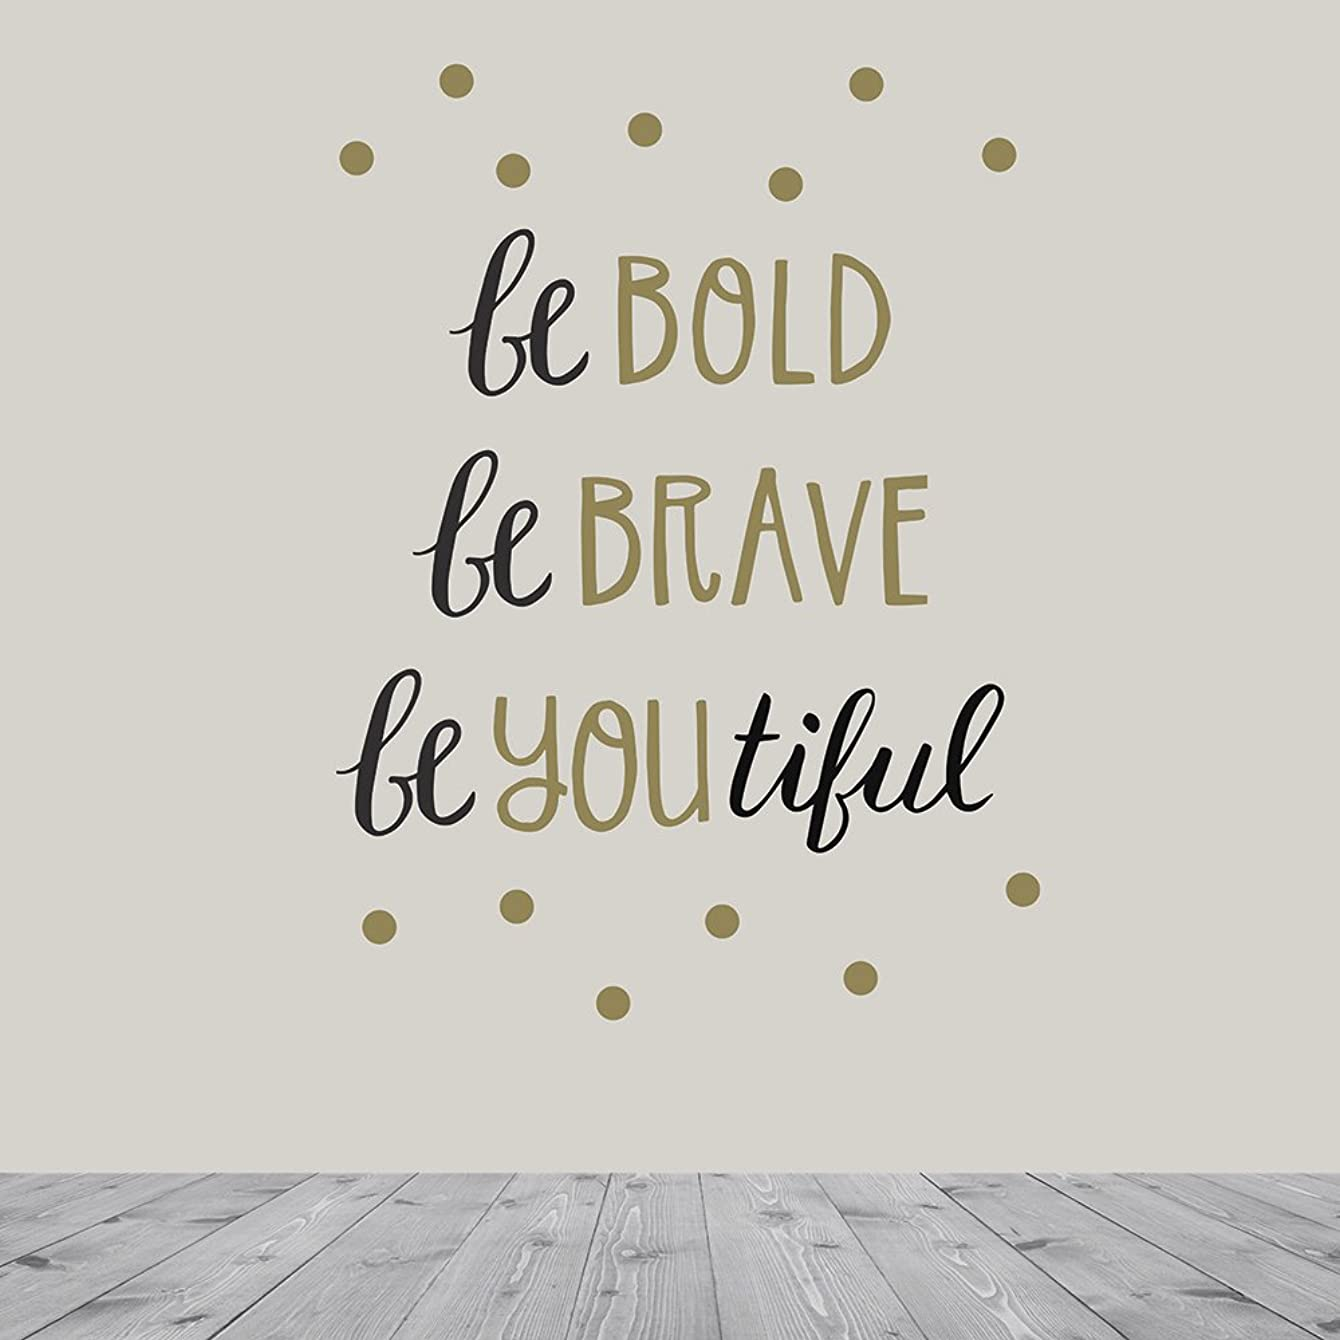 Wall Decor - Inspirational Quote. Peel and Stick Wall Decals - Easy to Remove Black and Gold Vinyl Quote - Be Bold, Be Brave, Be Youtiful. DIY Decoration. By Paper Riot Co.